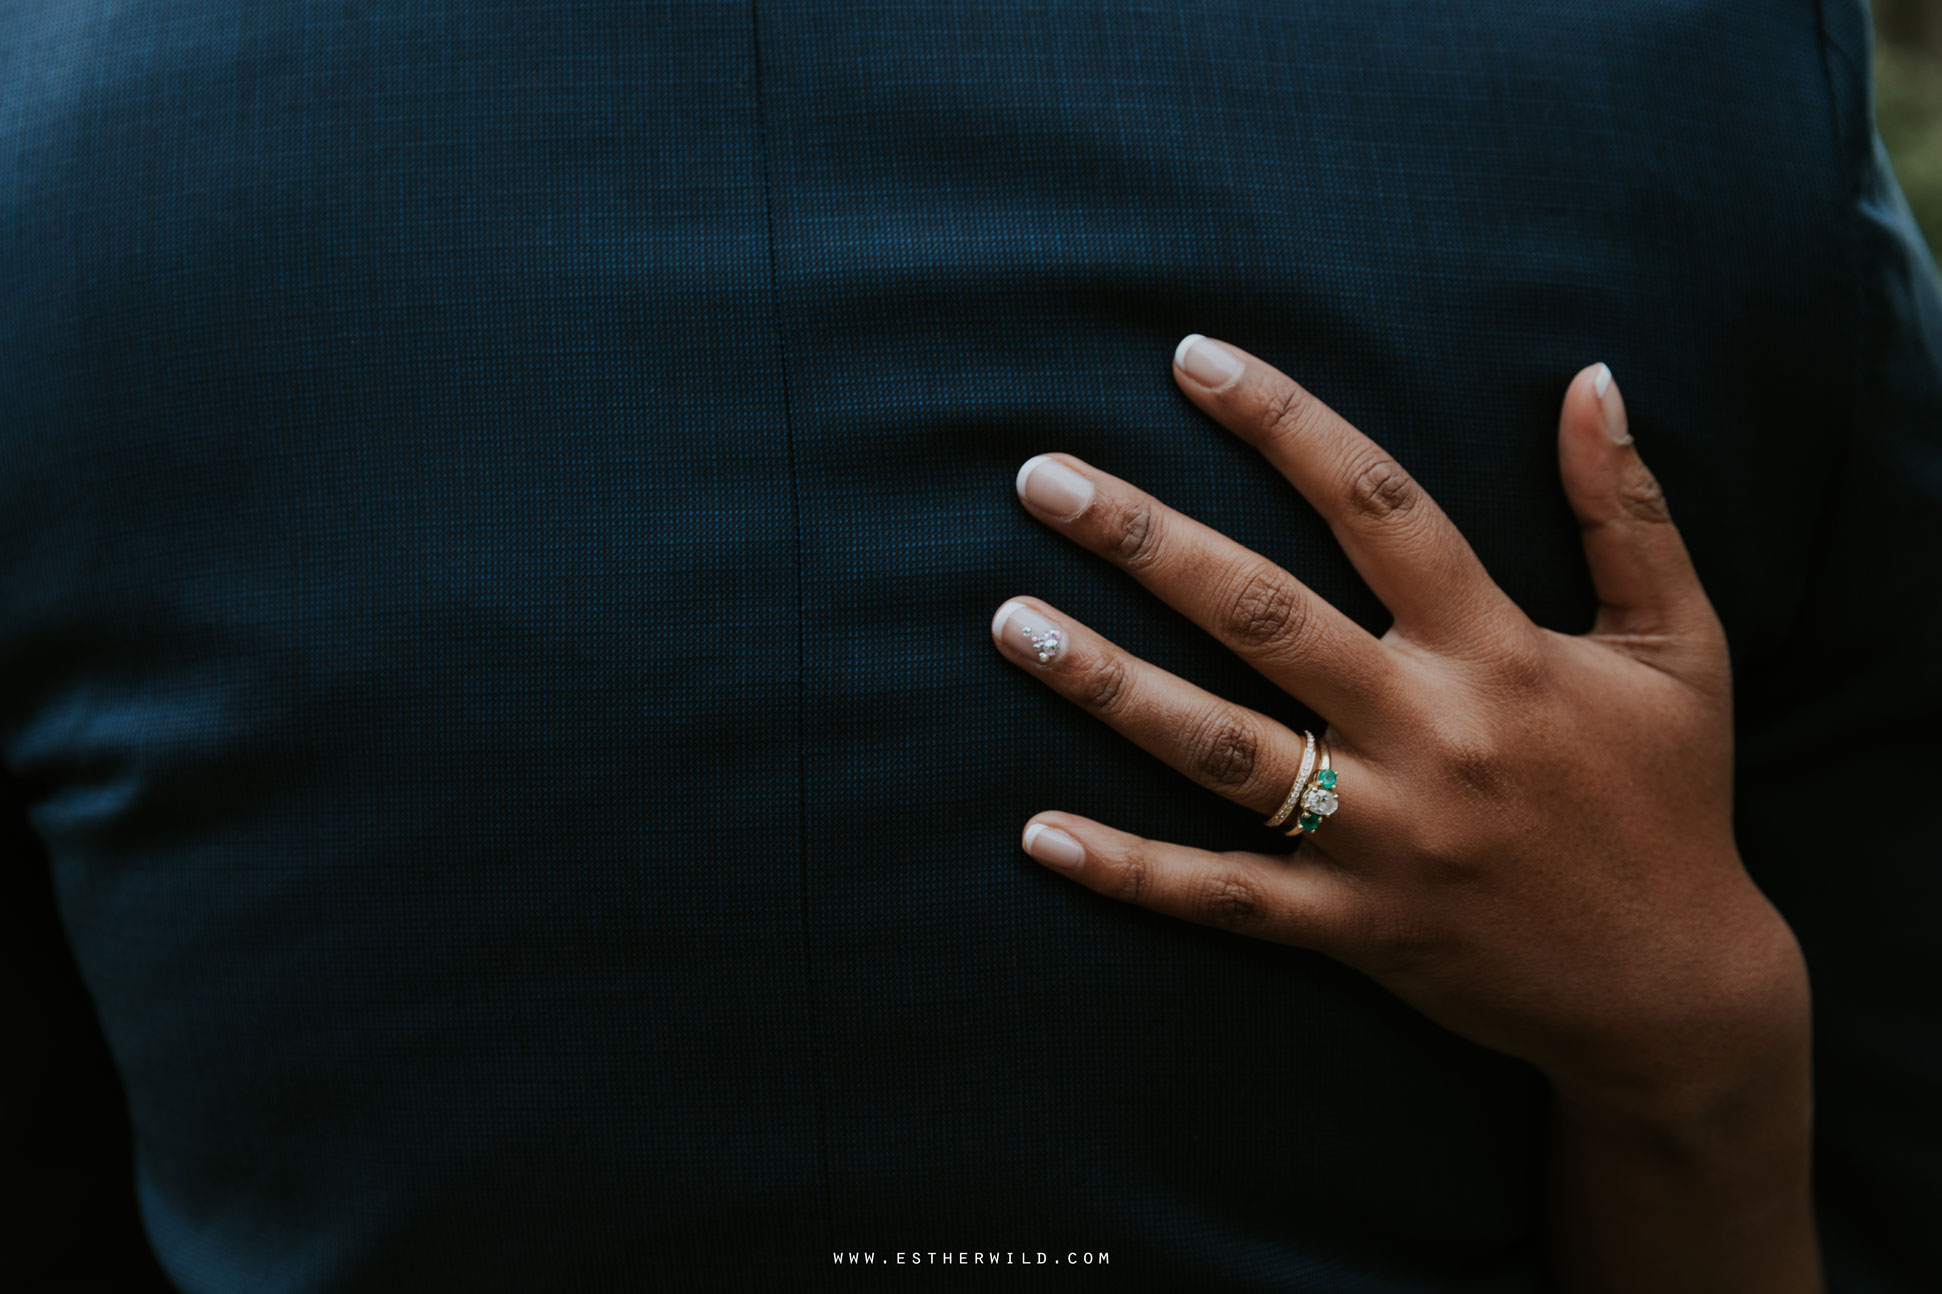 Twickenham_Registry_Office_London_Wedding_Ceremony_Esther_Wild_Photographer_IMG_0828.jpg